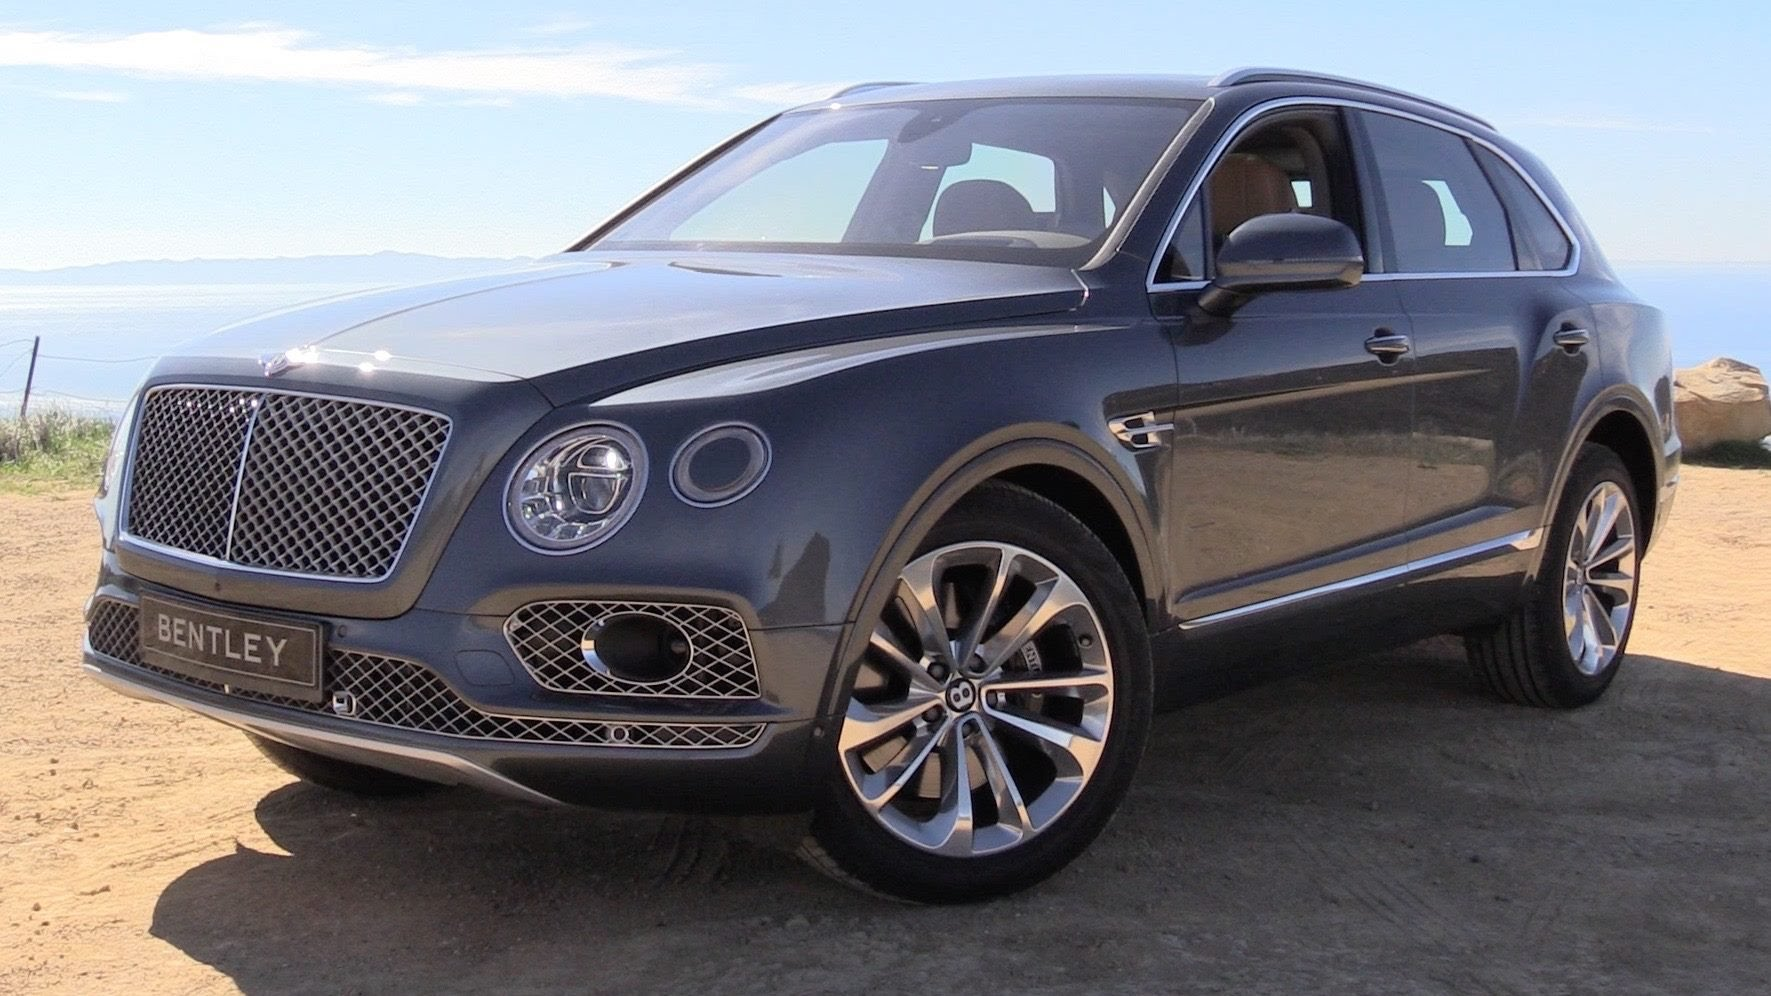 2017 Bentley Bentayga 3